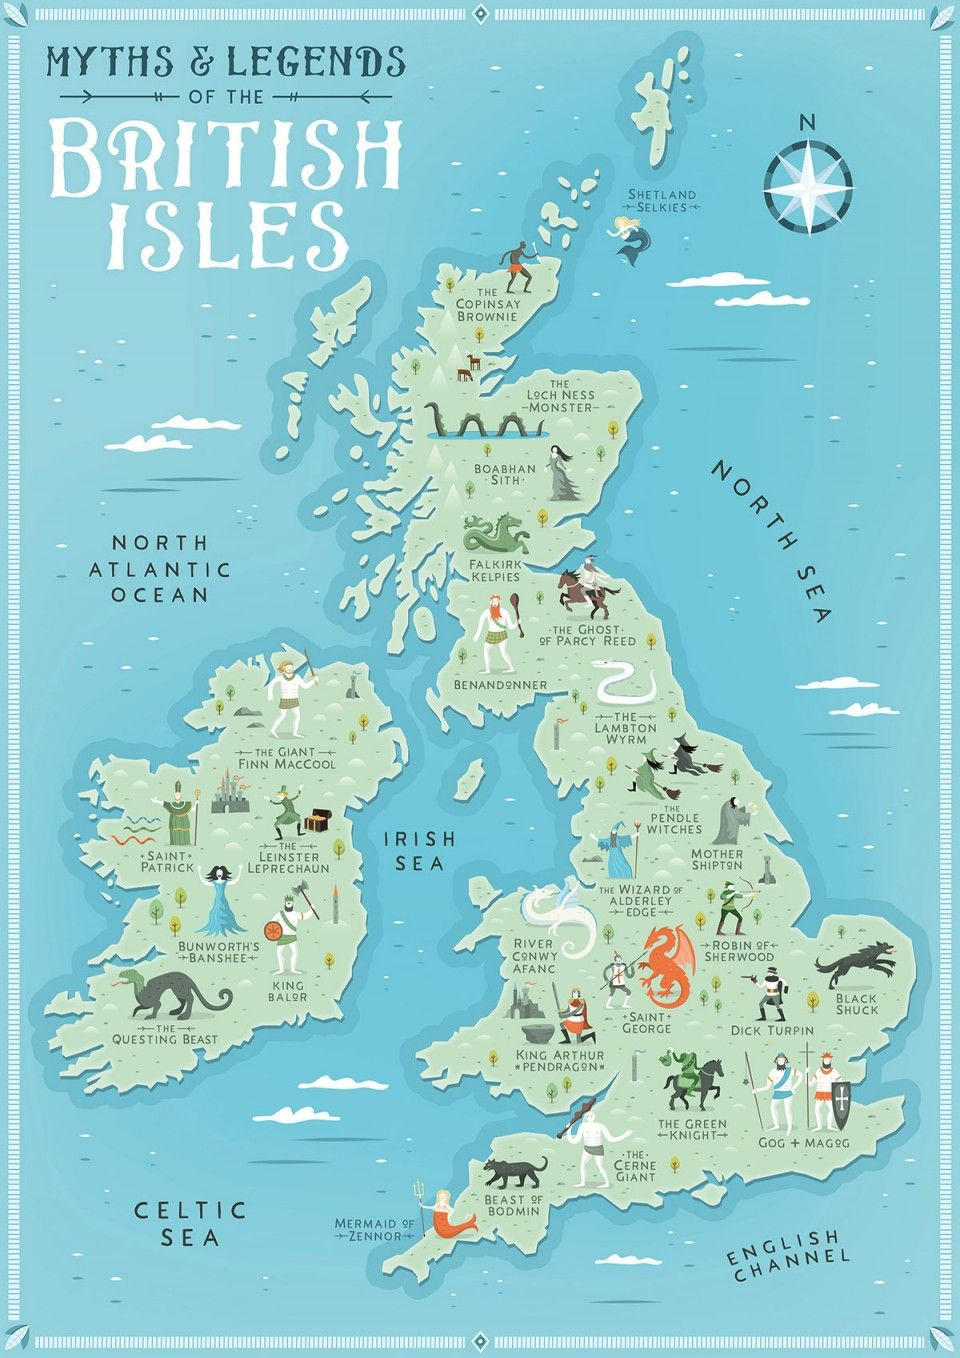 The British Isles Map Myths & Legends of the British Isles Map | Art | Illustrated Maps  The British Isles Map